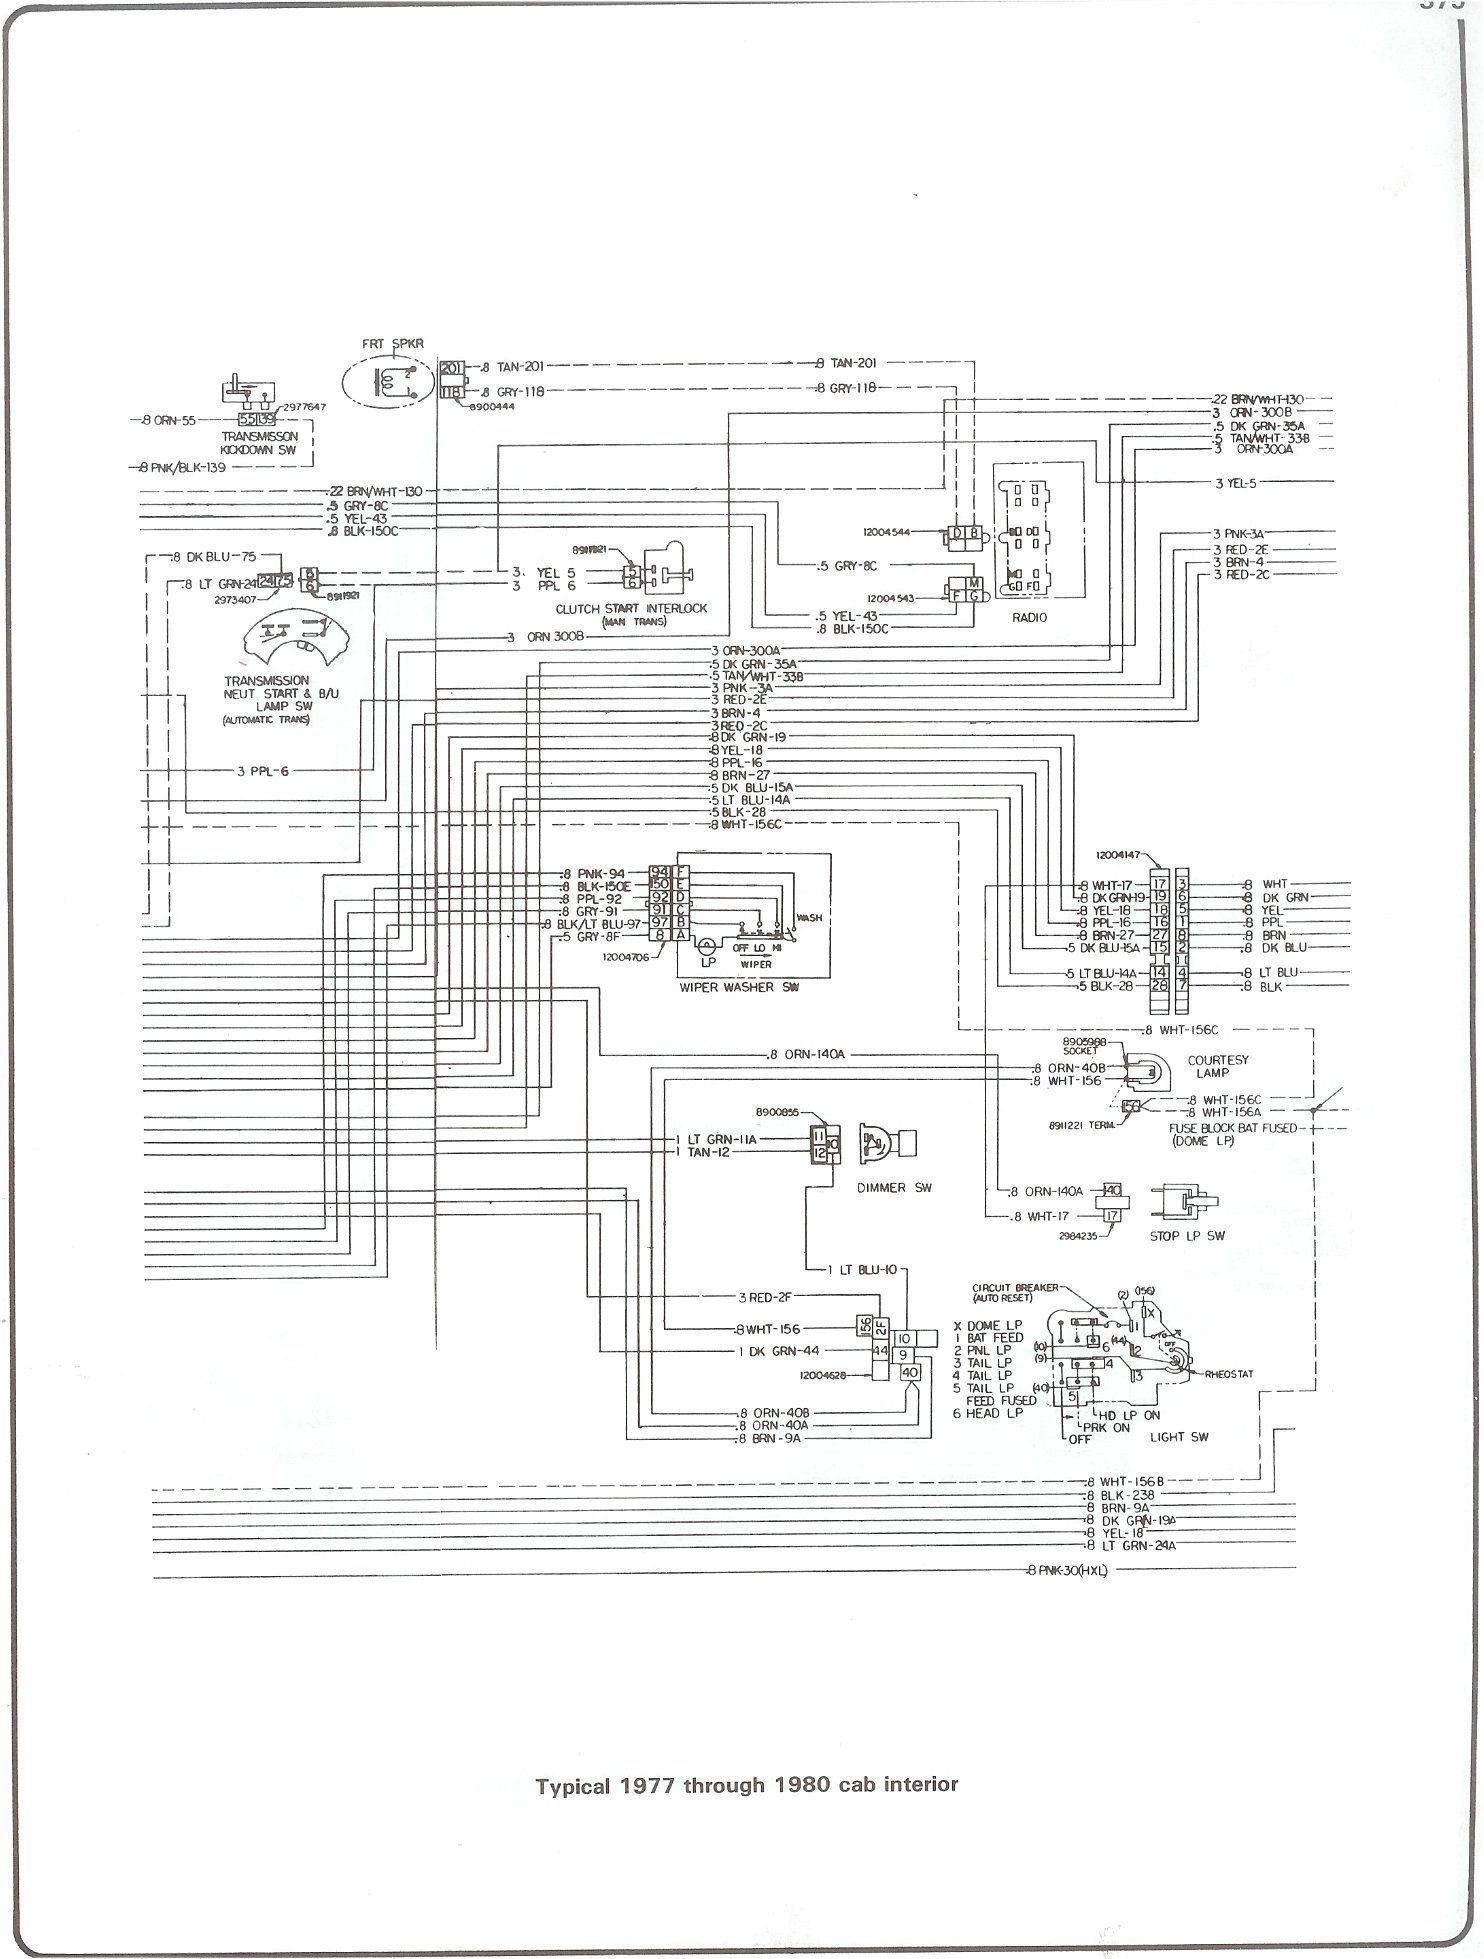 1968 Pontiac Gto Wiring Diagram also Chevrolet Vin Decoder JKO2zzwMcP5s1BipClPiMZYdKUduYnbFalk80aOjYo4 further 6evvs Pontiac 1964 Gto Xxxxx Xxxxx Install 1964 Pontiac Windshield together with Wiring Diagram 1973 Chrysler Imperial as well Polaris 750 Slt Wiring Diagram. on 1974 chevy c10 wiring diagram